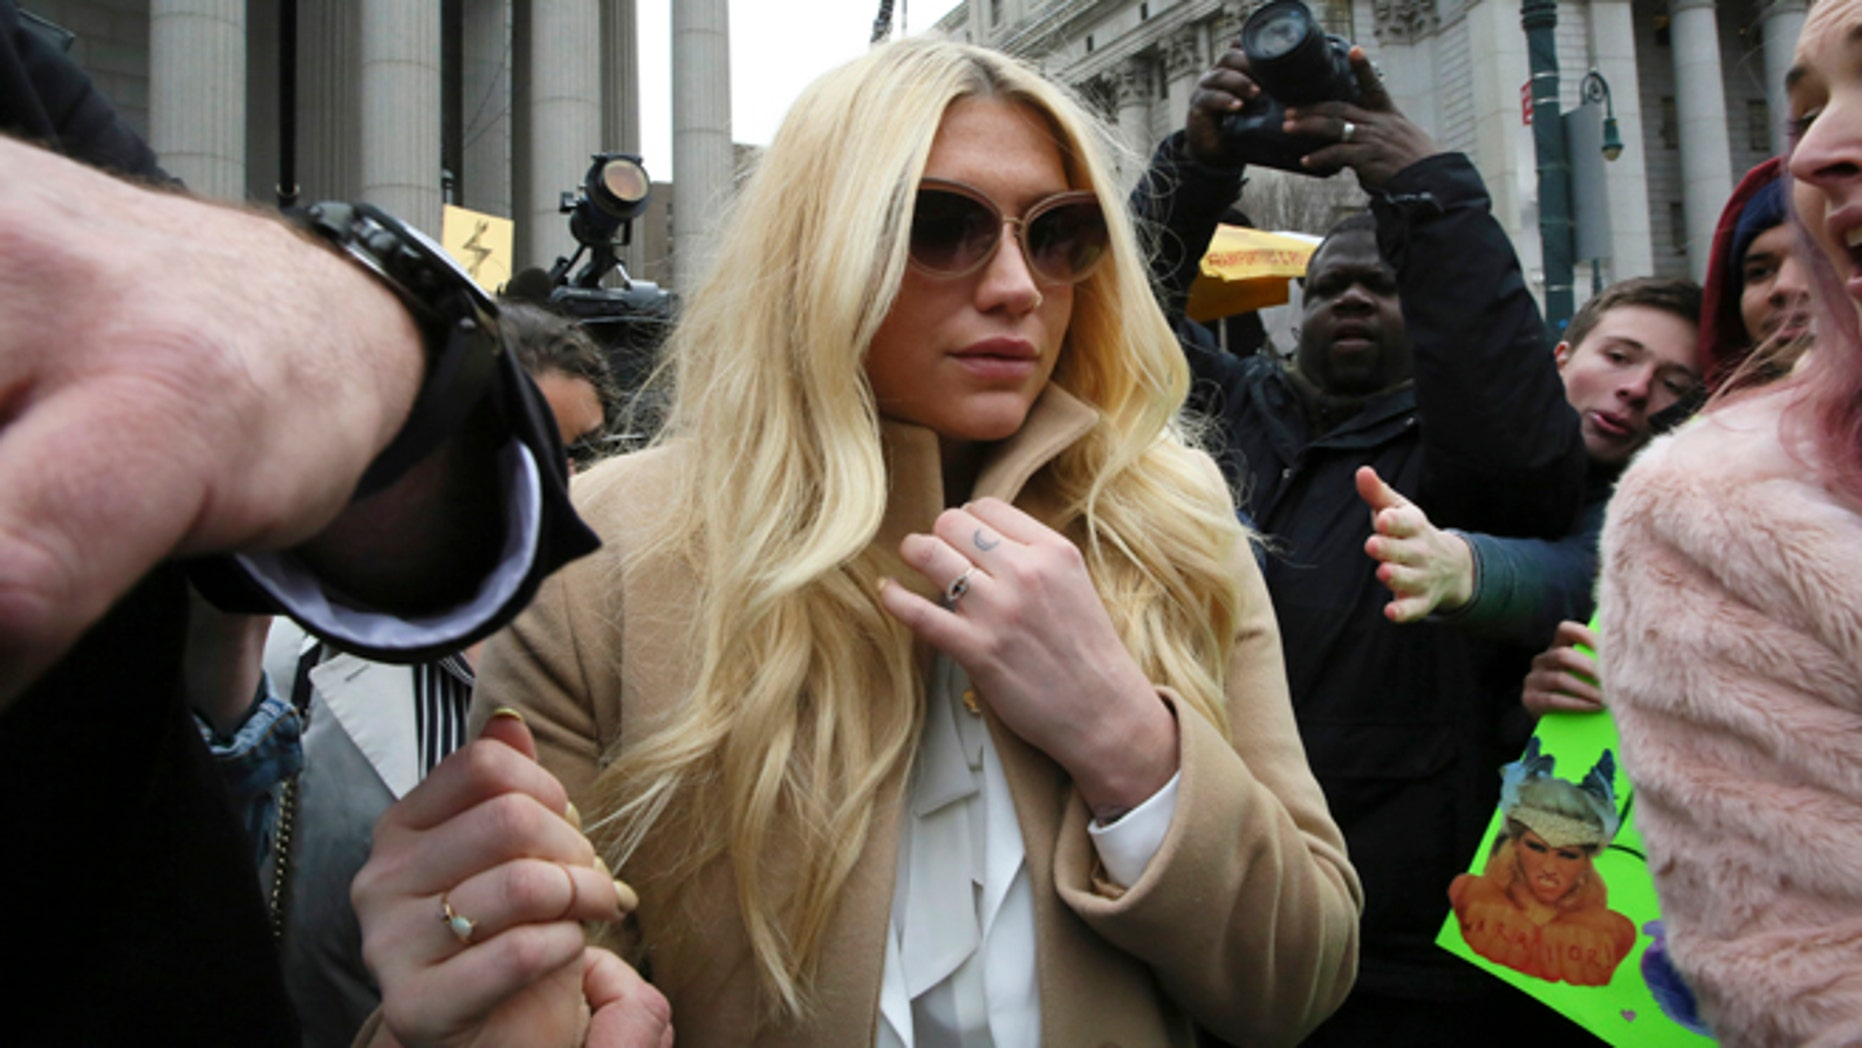 Feb. 19, 2016. Pop star Kesha leaves Supreme court in New York after a hearing involving her producer, Dr. Luke.